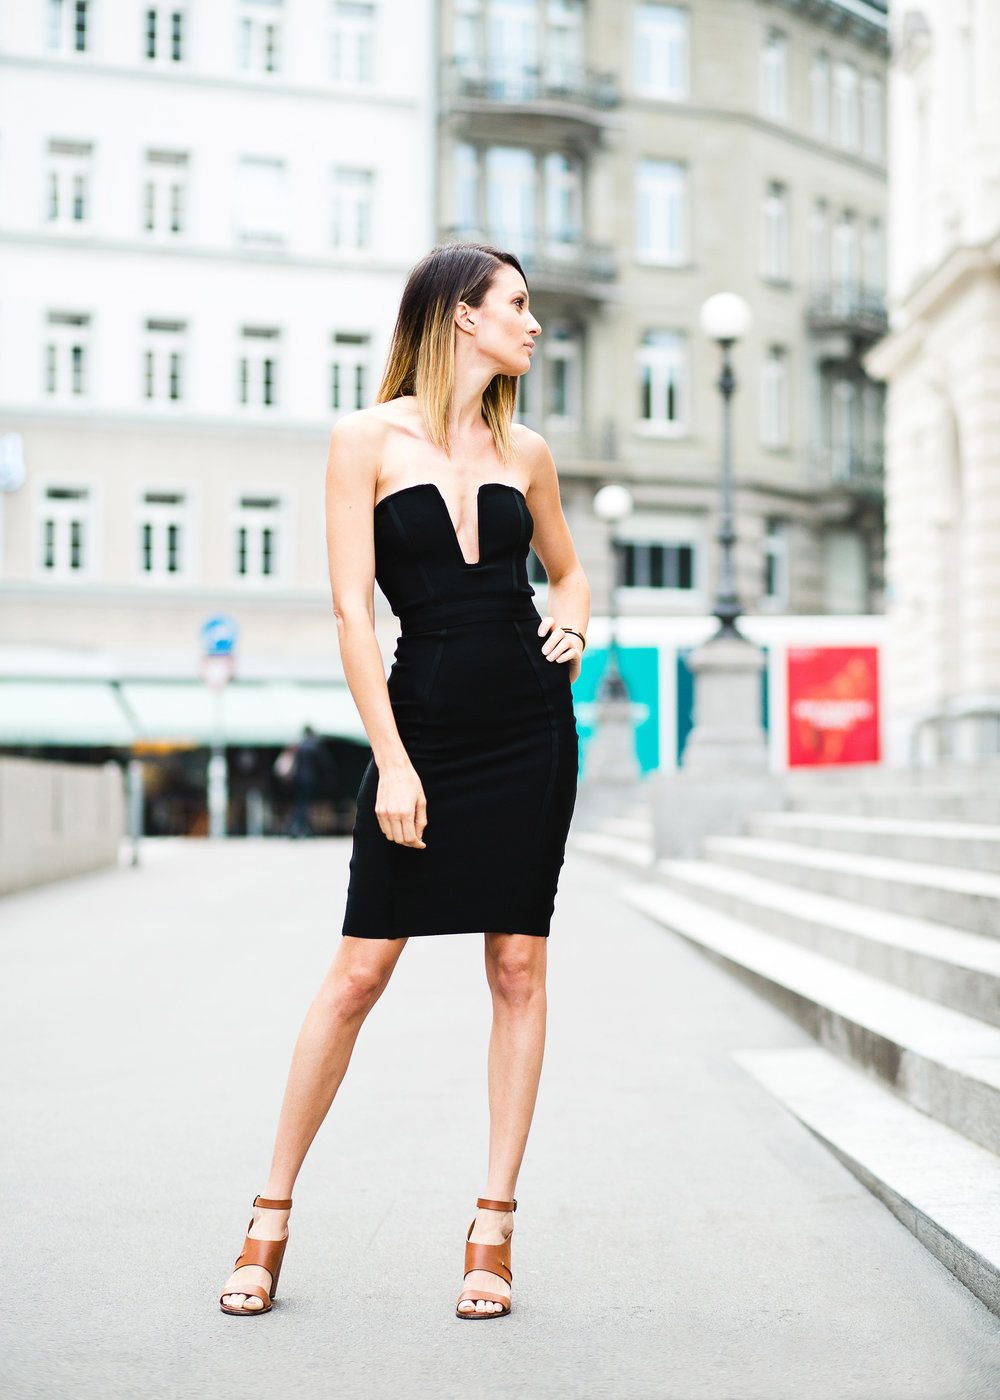 Little_Black_Dress_Model